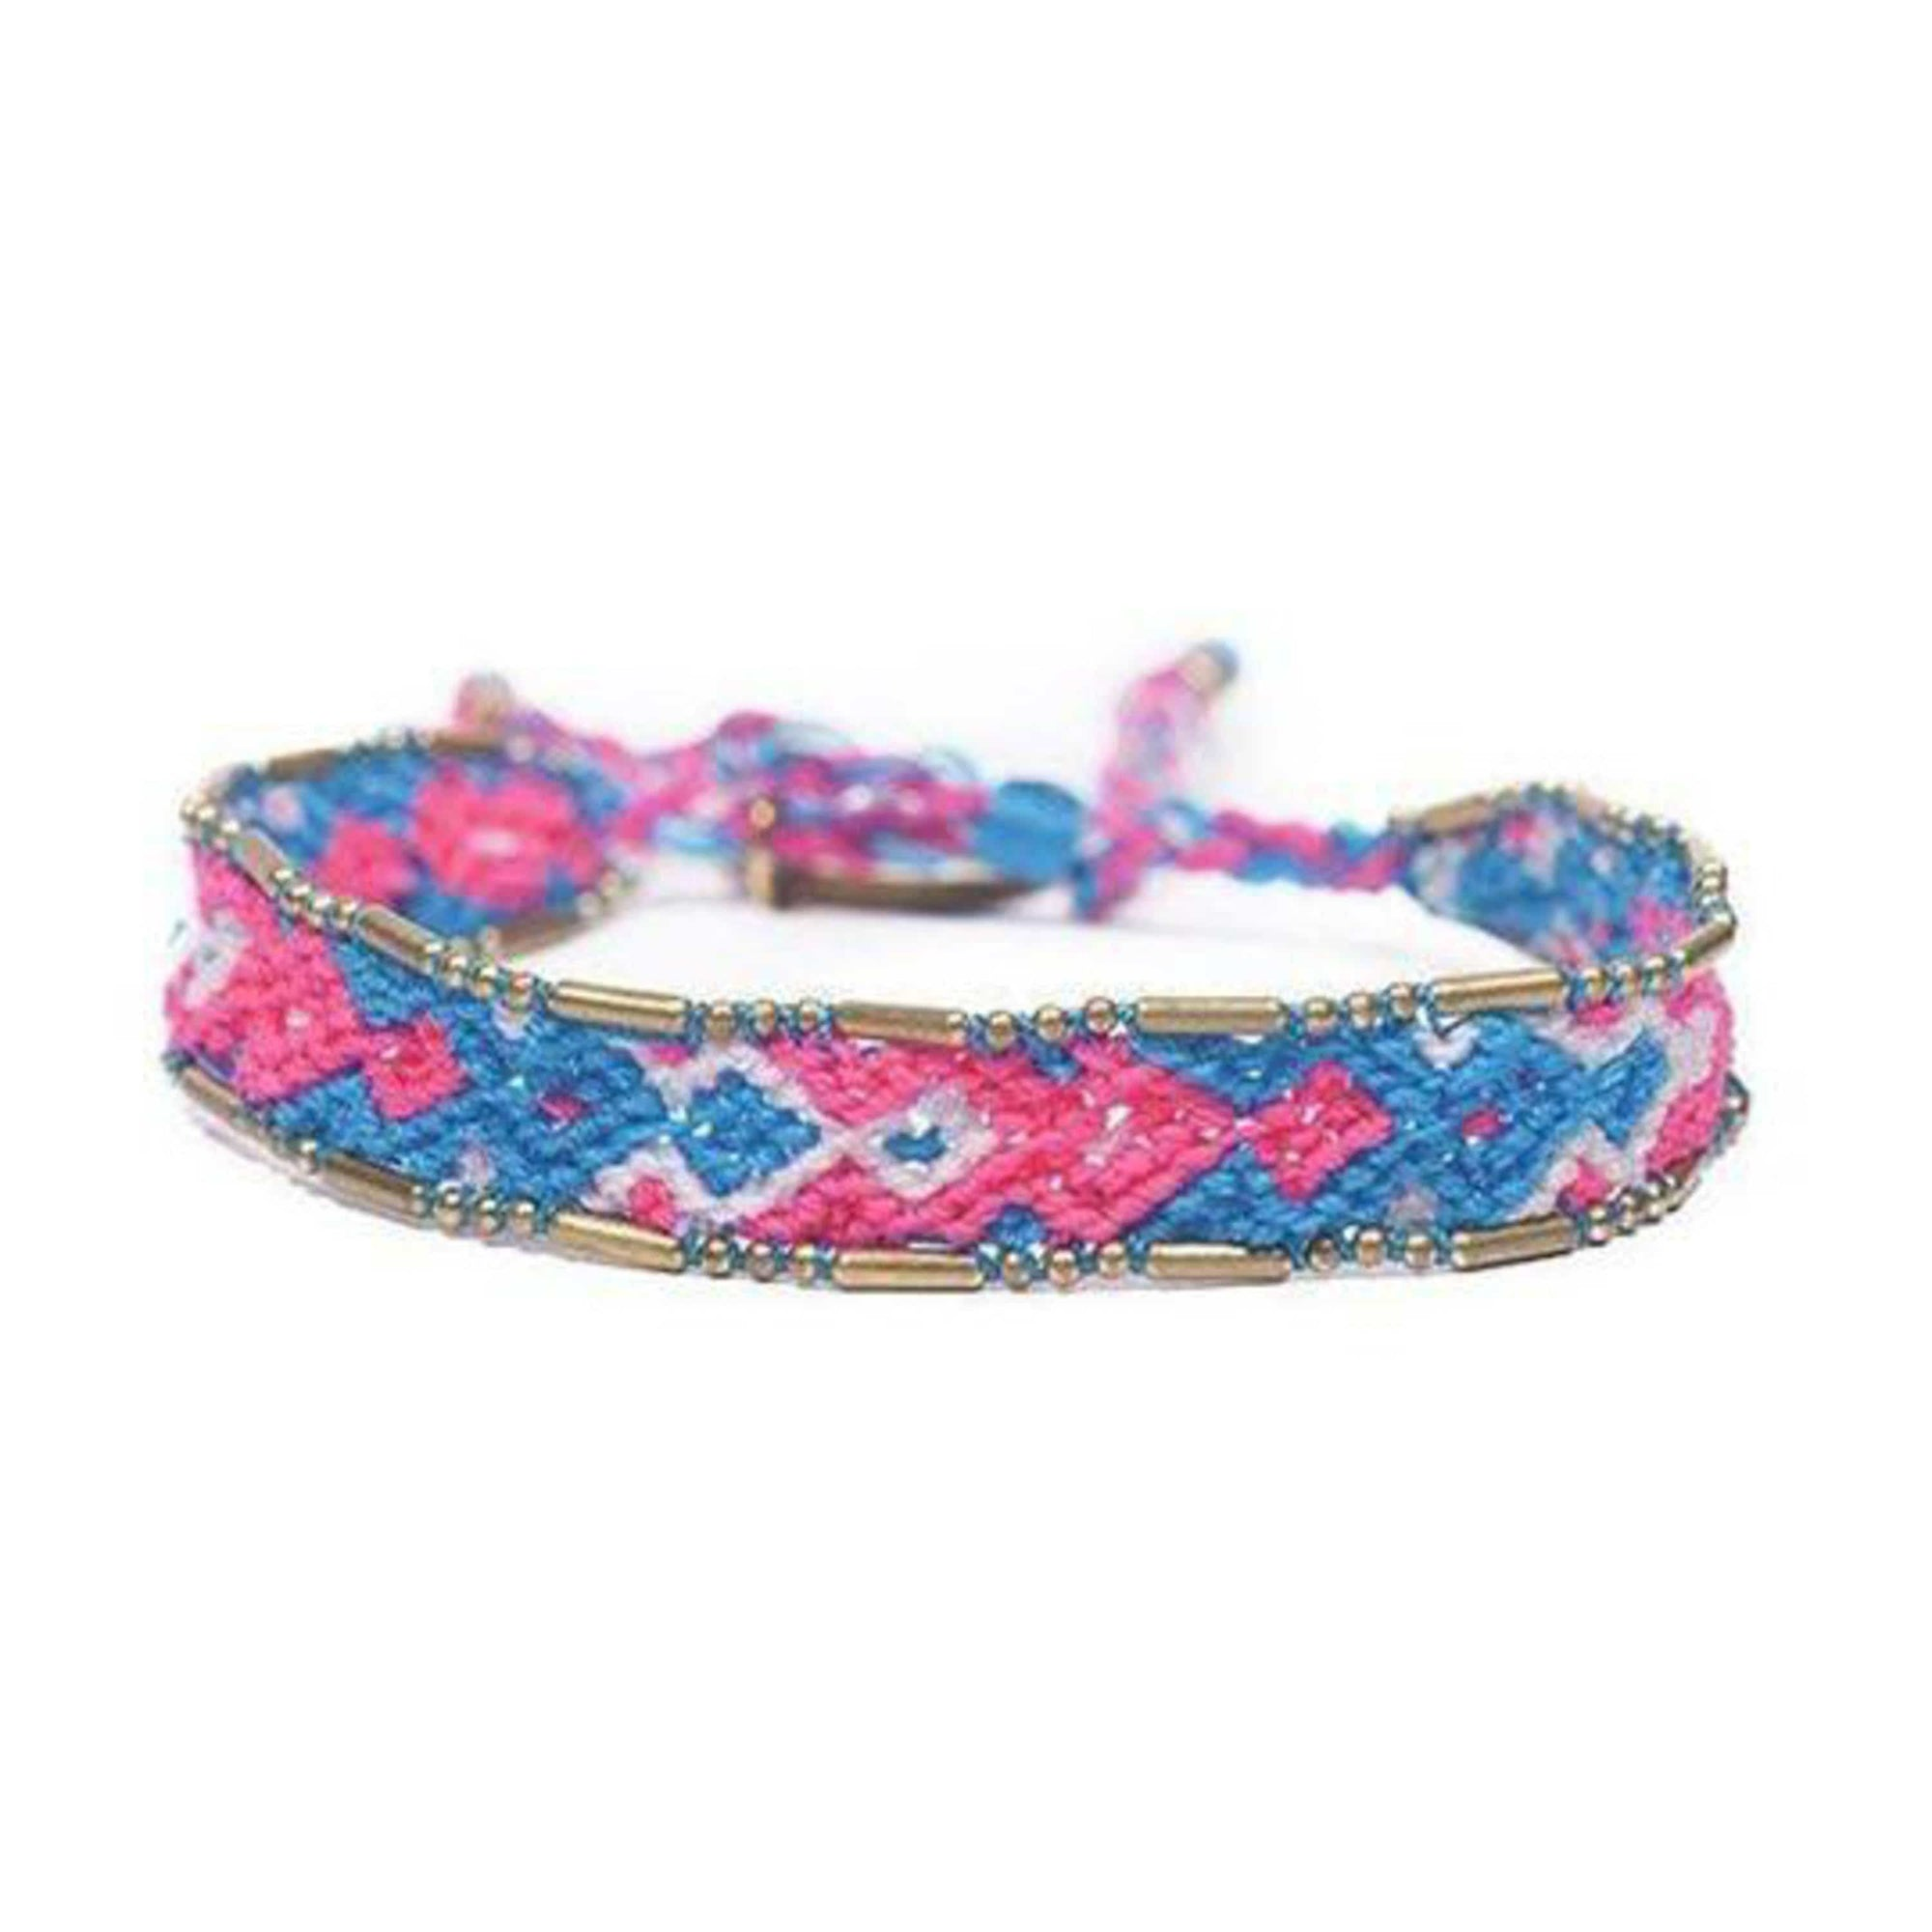 Bali Friendship Bracelet - Electric Love Love Is Project woven bracelets by artisans in Indonesia. Beaded bracelets creates jobs.